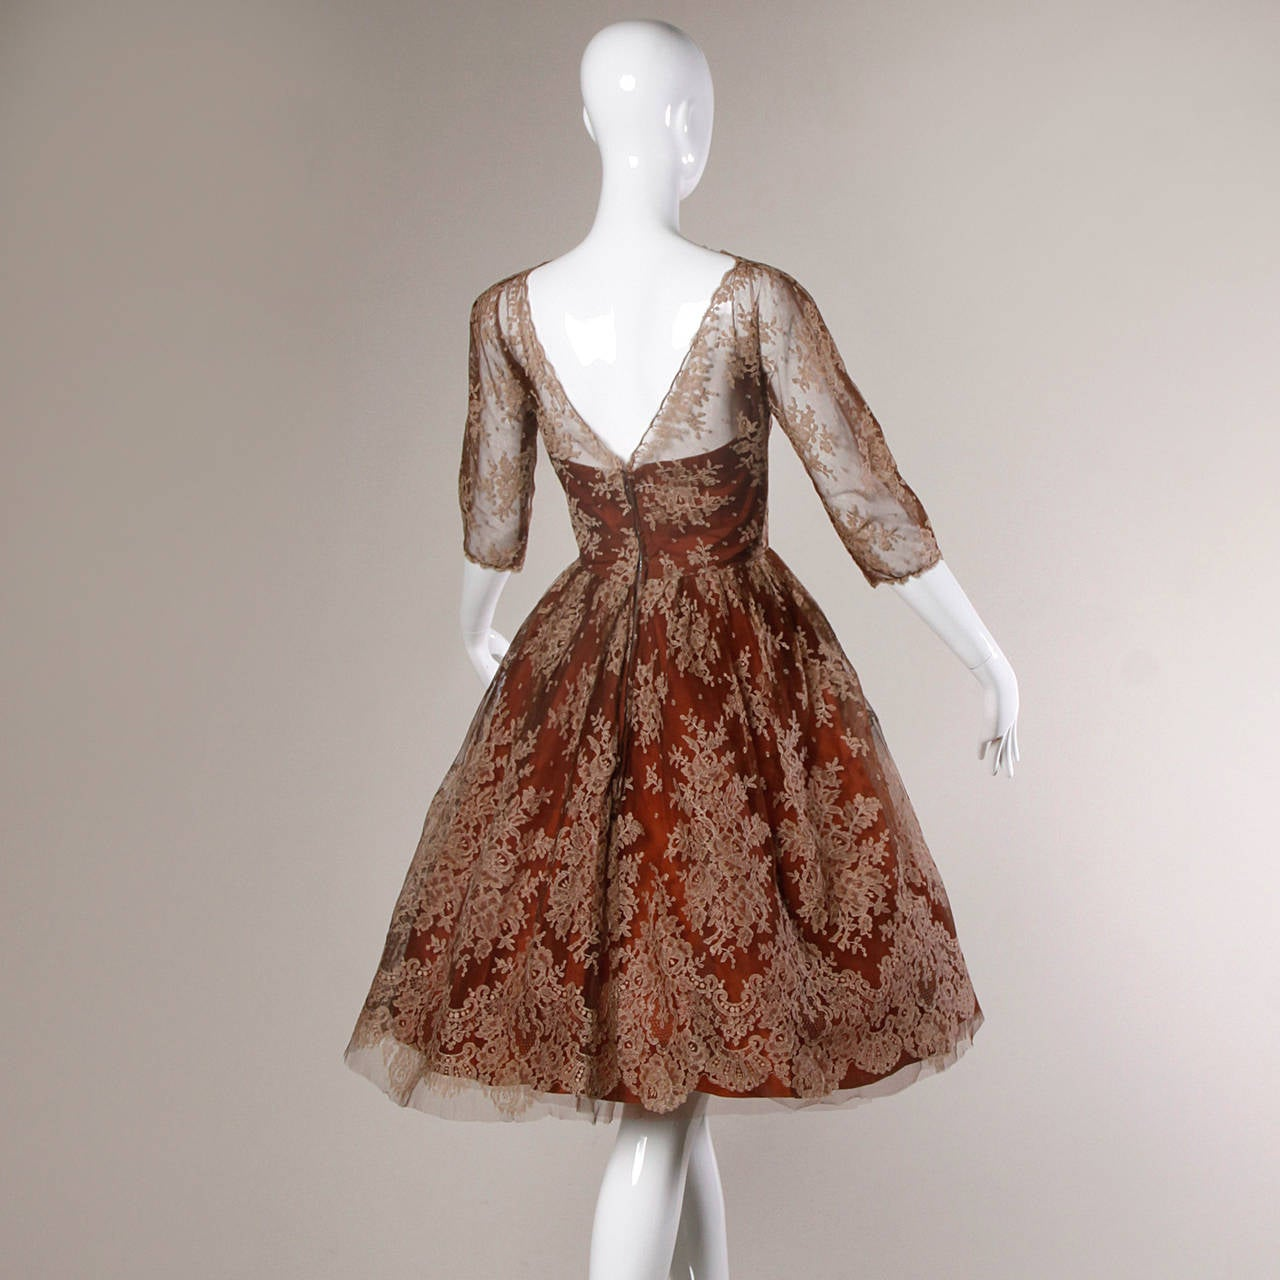 Dreamy 1950s Brown Tulle Chantilly Lace Cocktail Dress 8